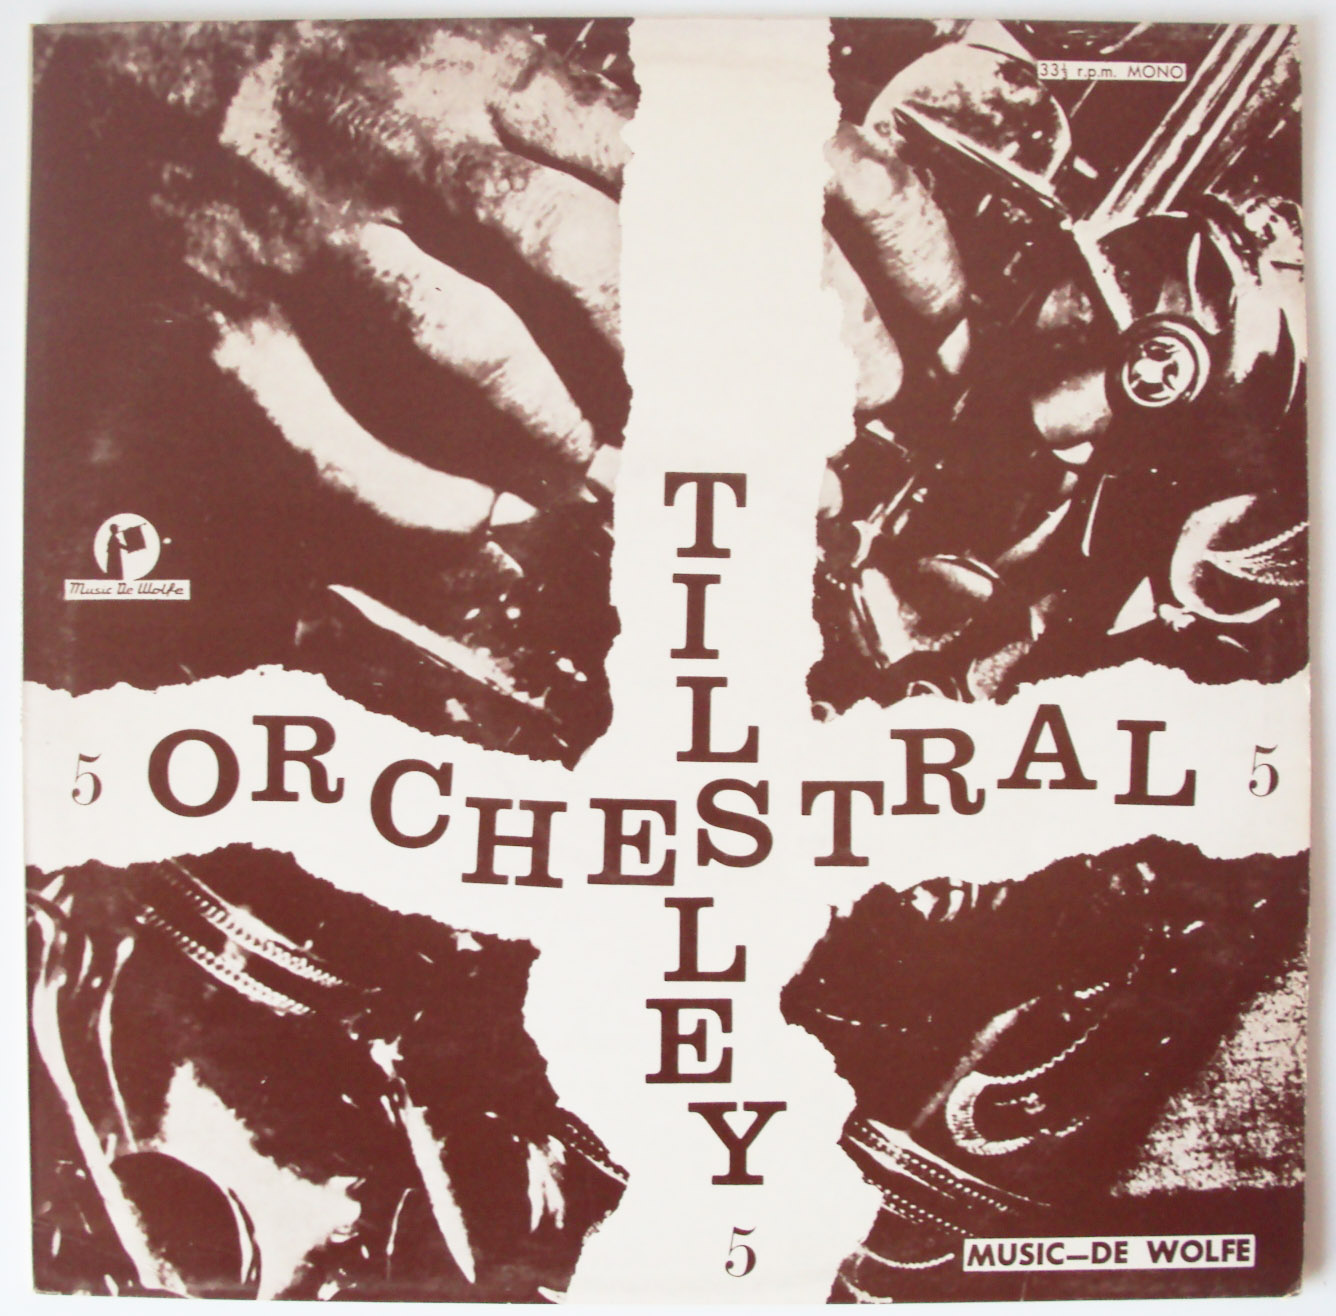 Reg Tilsley & Peter Reno tilsley orchestral No 5